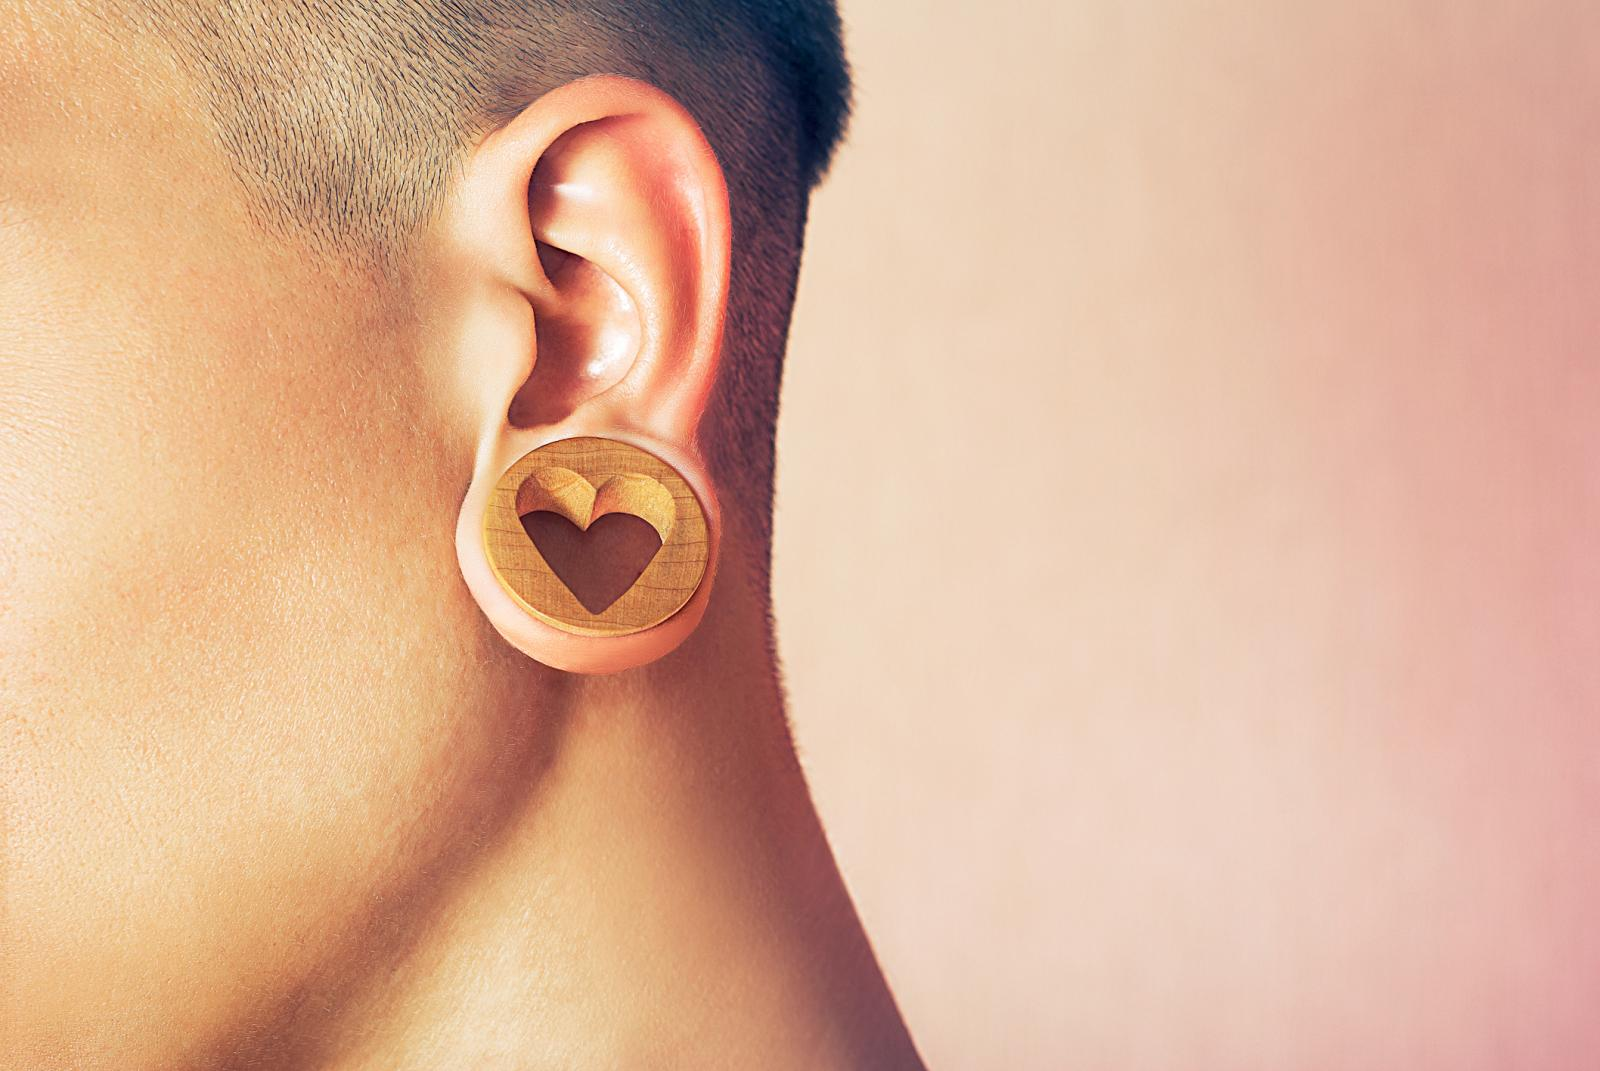 Man with ear tunnel